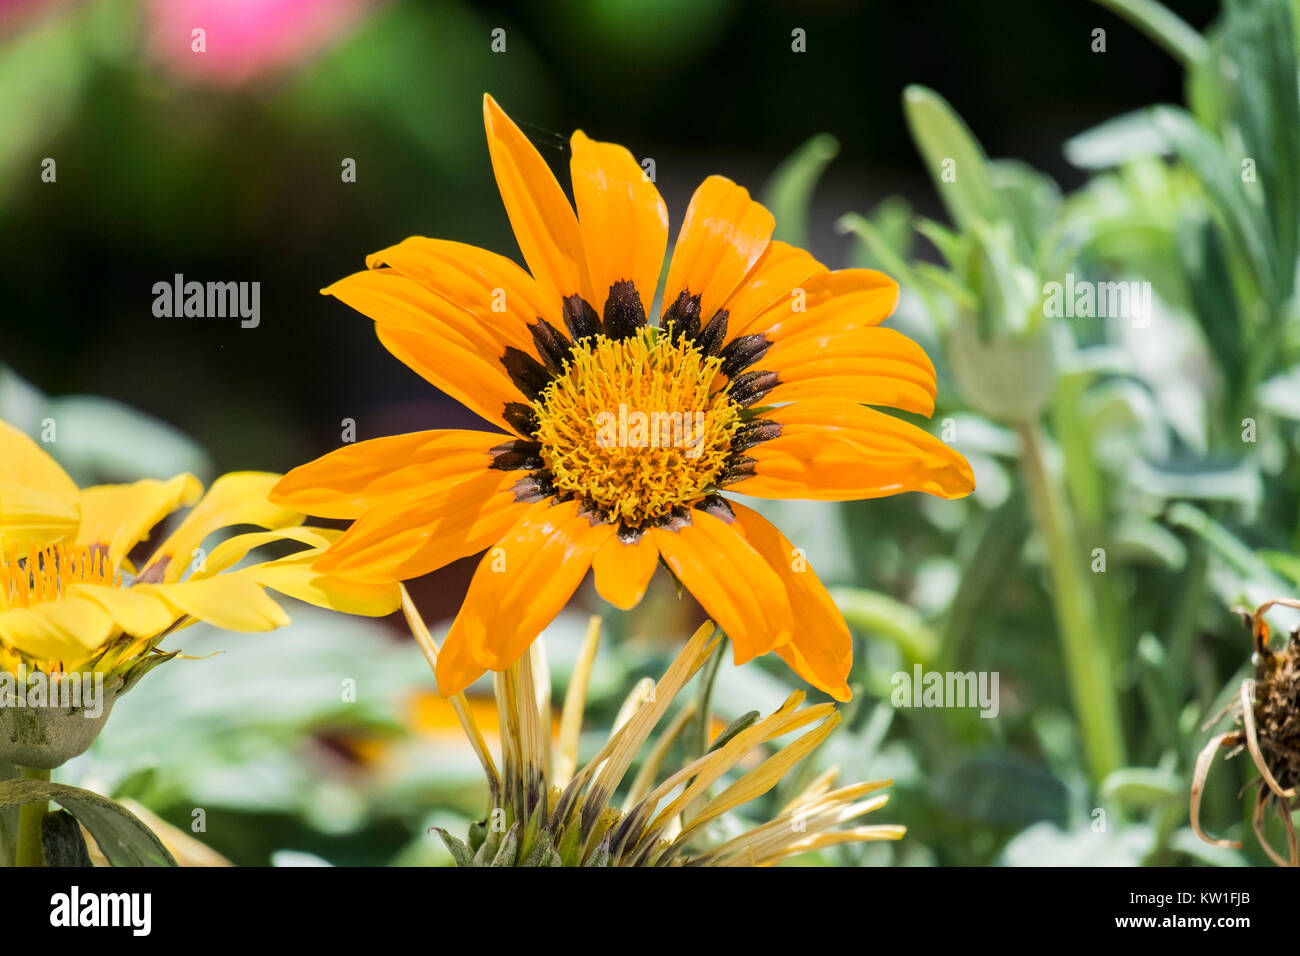 Orange Flower With Yellow Center Stock Photos Orange Flower With